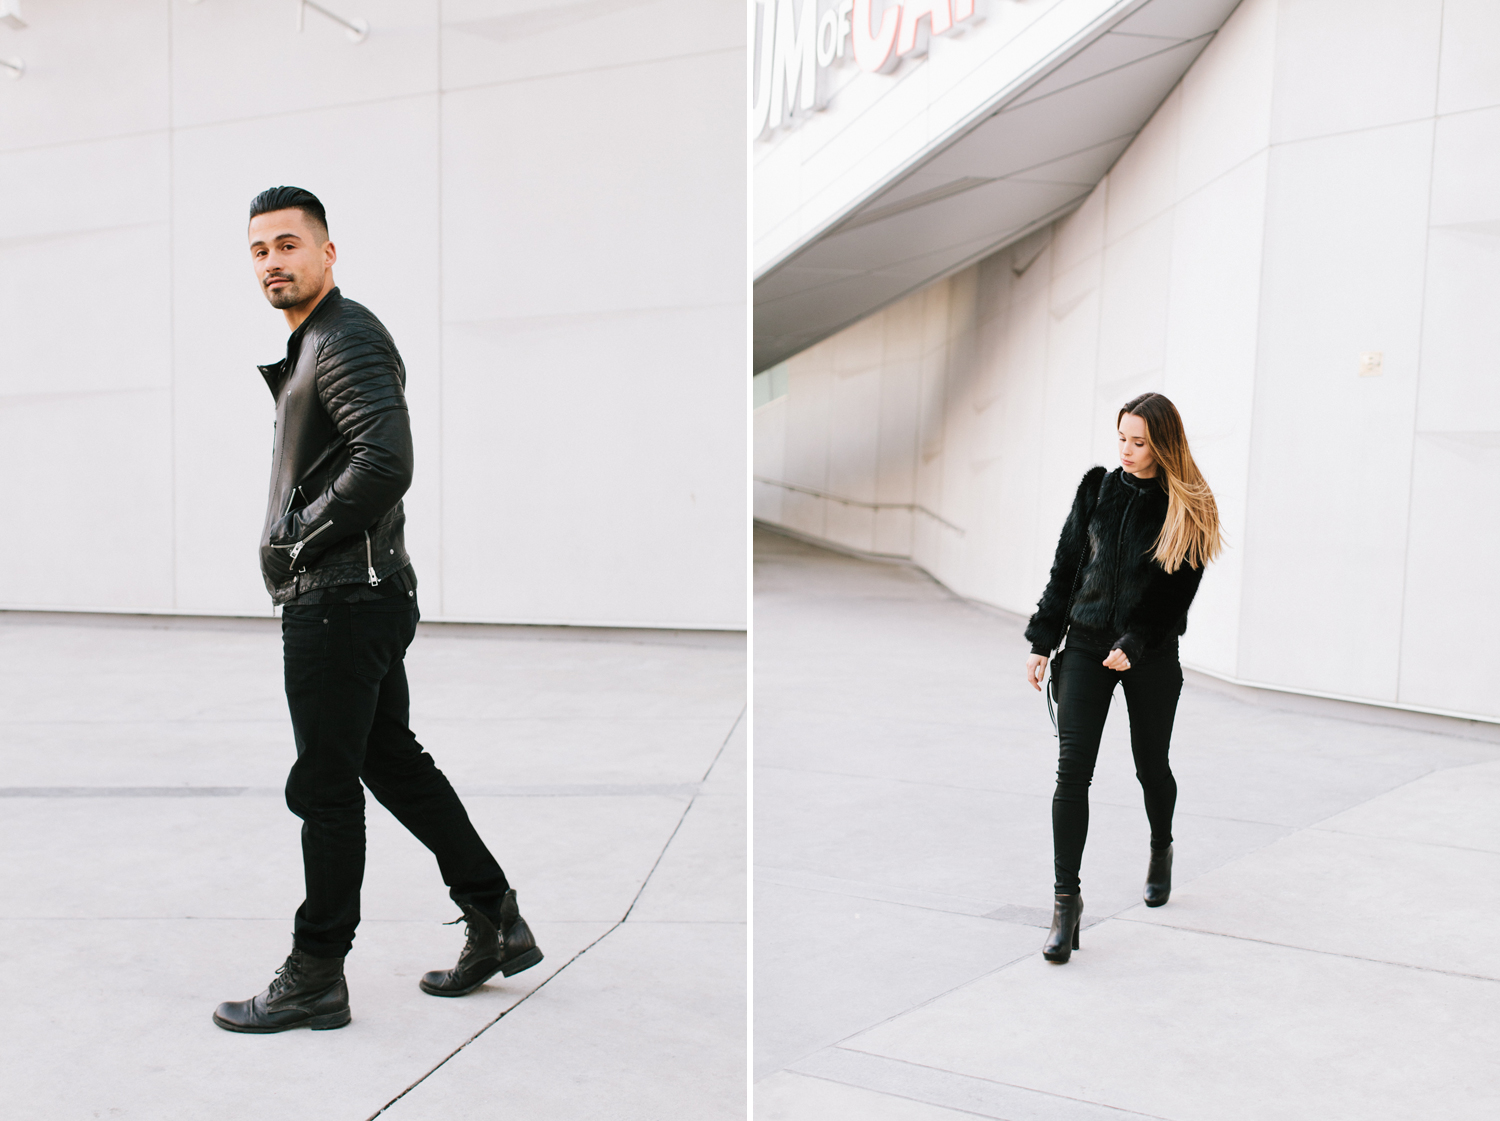 Jodi-Blk-fashion-blogger-Jose-Lopez-fit-michael-rousseau-photography-streetwear-fashion-engagement-session047.jpg